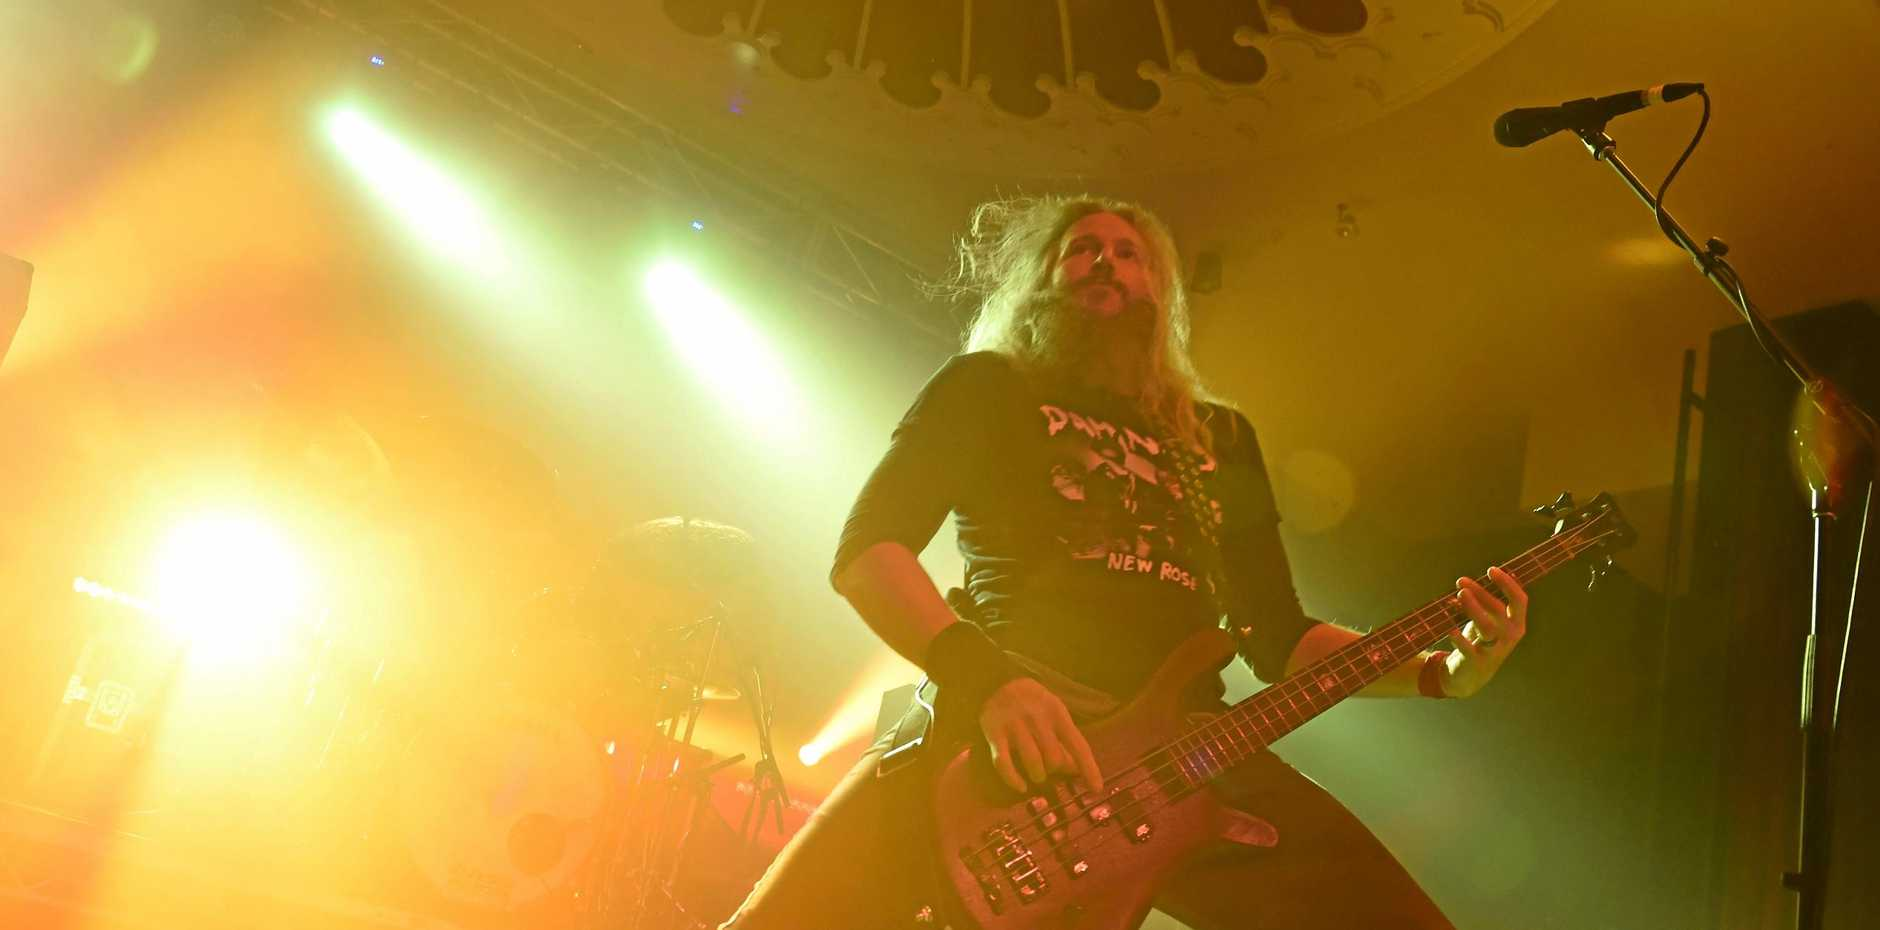 Mastadon perform at Eatons Hill in Brisbane with Gojira to a capacity crowd after their successful Download performance in Melbourne.